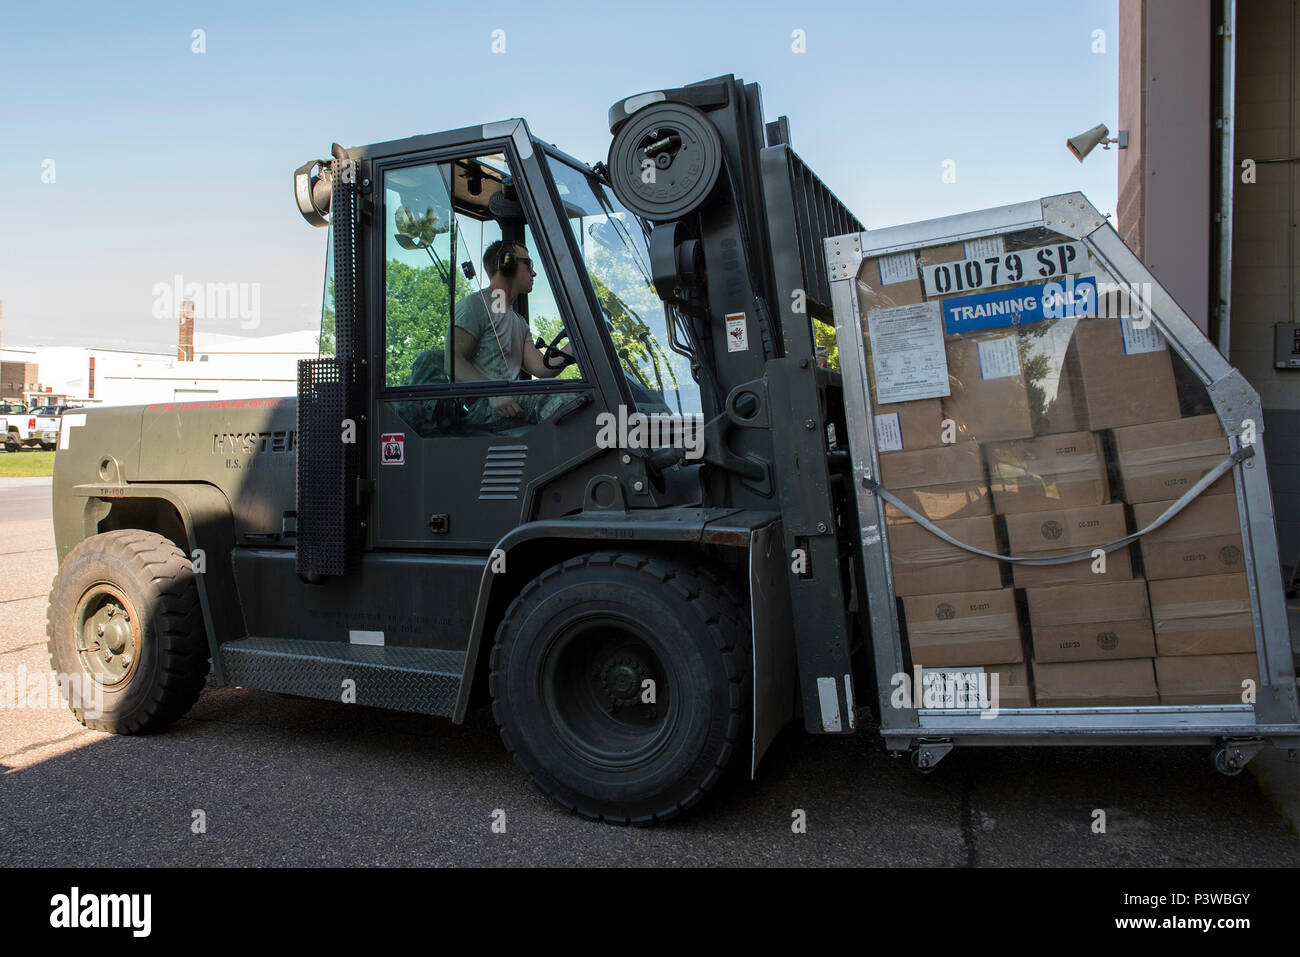 U.S. Air Force Senior Airman Alex Byrne, assigned to the Logistics Readiness Squadron, 158th Fighter Wing, Vermont National Guard, drives a forklift carrying medical countermeasure supplies during Vigilant Guard 2016, at the Burlington International Airport, South Burlington, Vt., July 27, 2016. Vigilant Guard is a national level emergency response exercise, sponsored by the National Guard and NORTHCOM, which provides National Guard units an opportunity to improve cooperation and relationships with regional civilian, military, and federal partners in preparation for emergencies and catastrophi Stock Photo